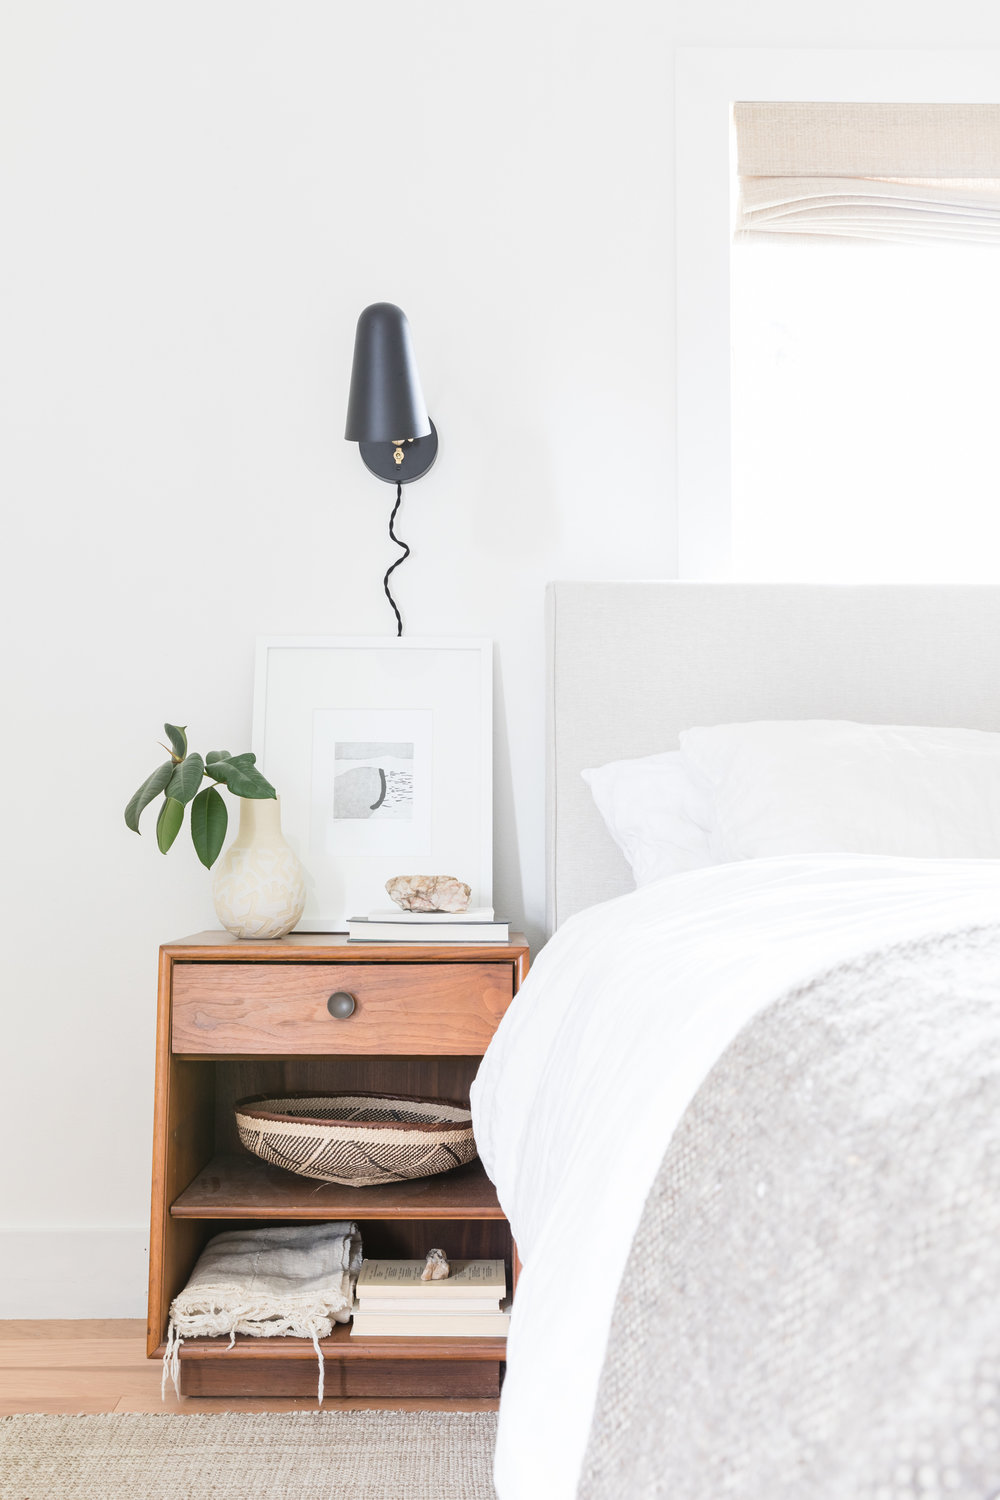 White-walled bedroom with linen bedding and black wall sconce.